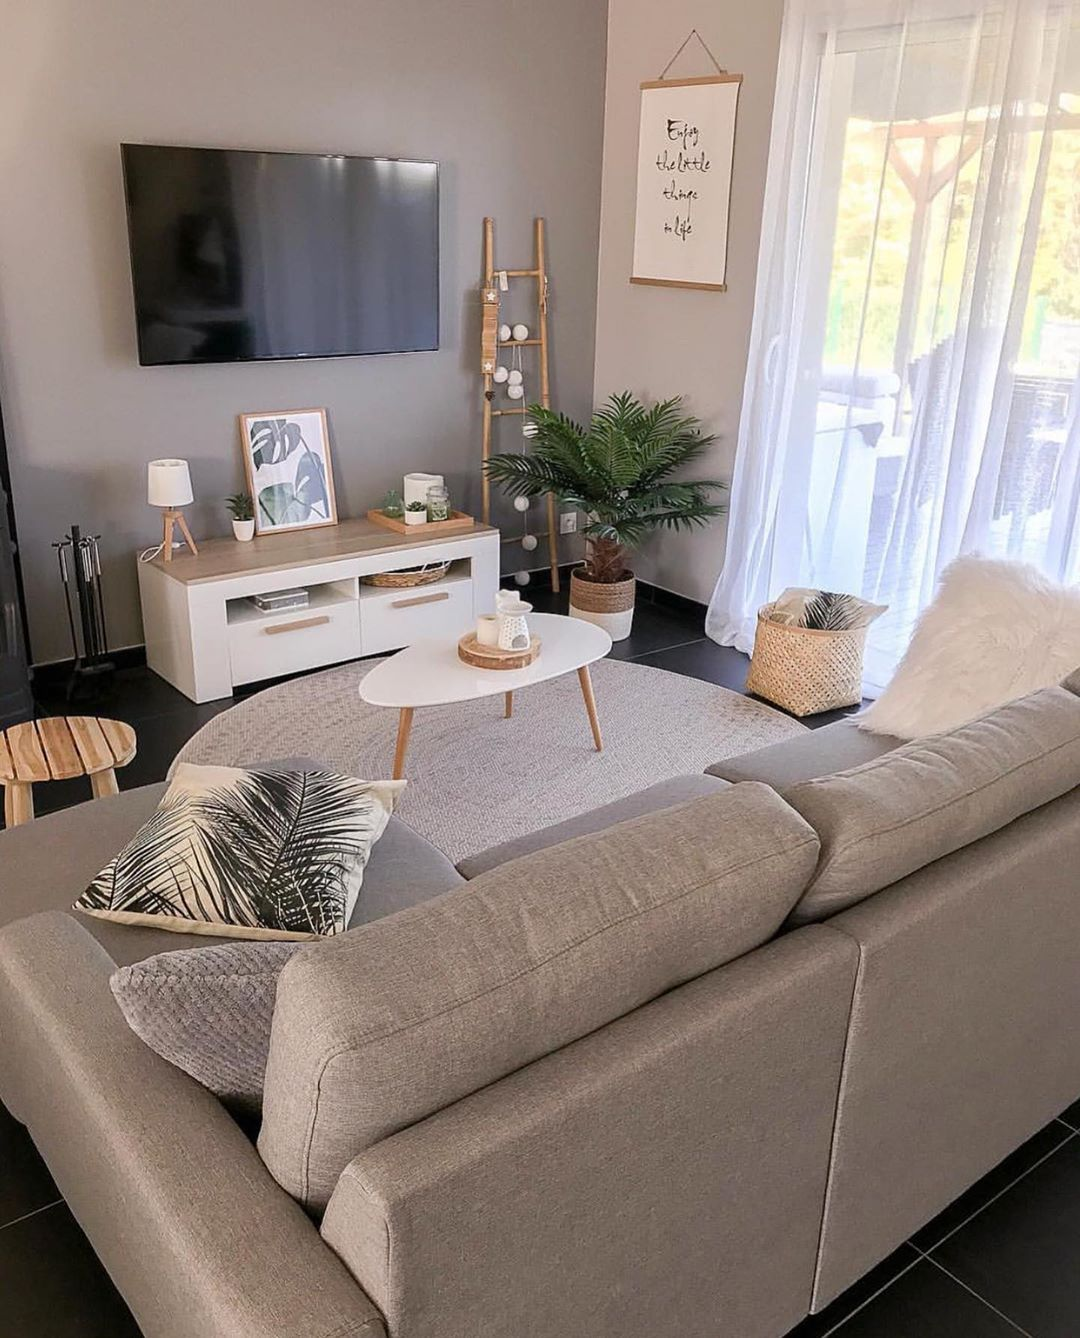 Online Furniture Shopping Made Easy In 2020 Small Apartment Living Room Small Living Room Design Small Apartment Decorating Living Room